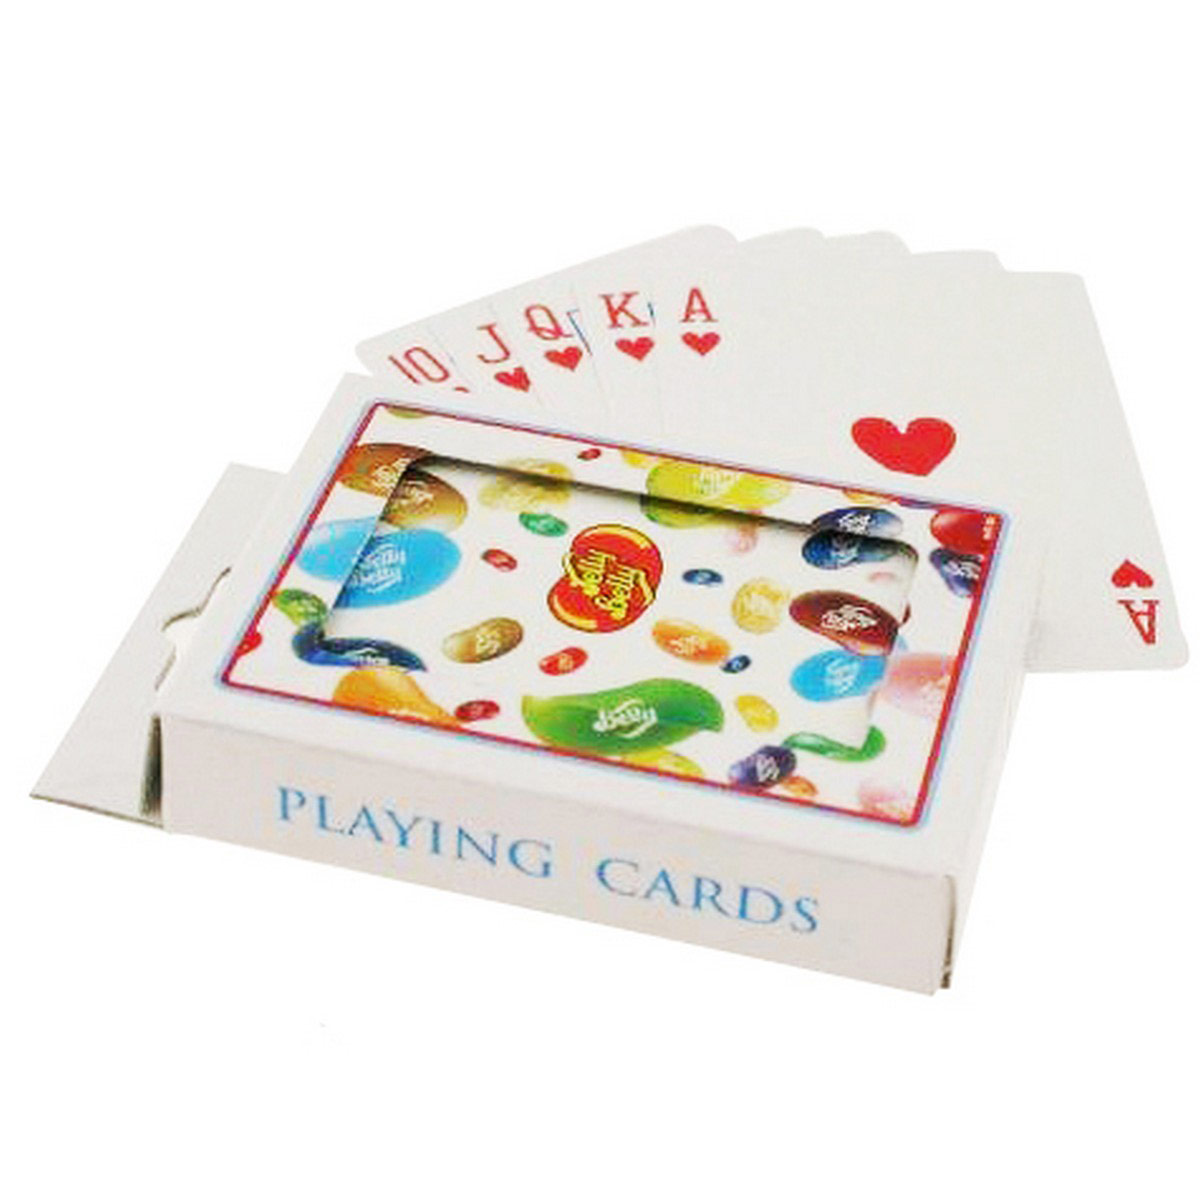 Jelly Belly Playing Cards